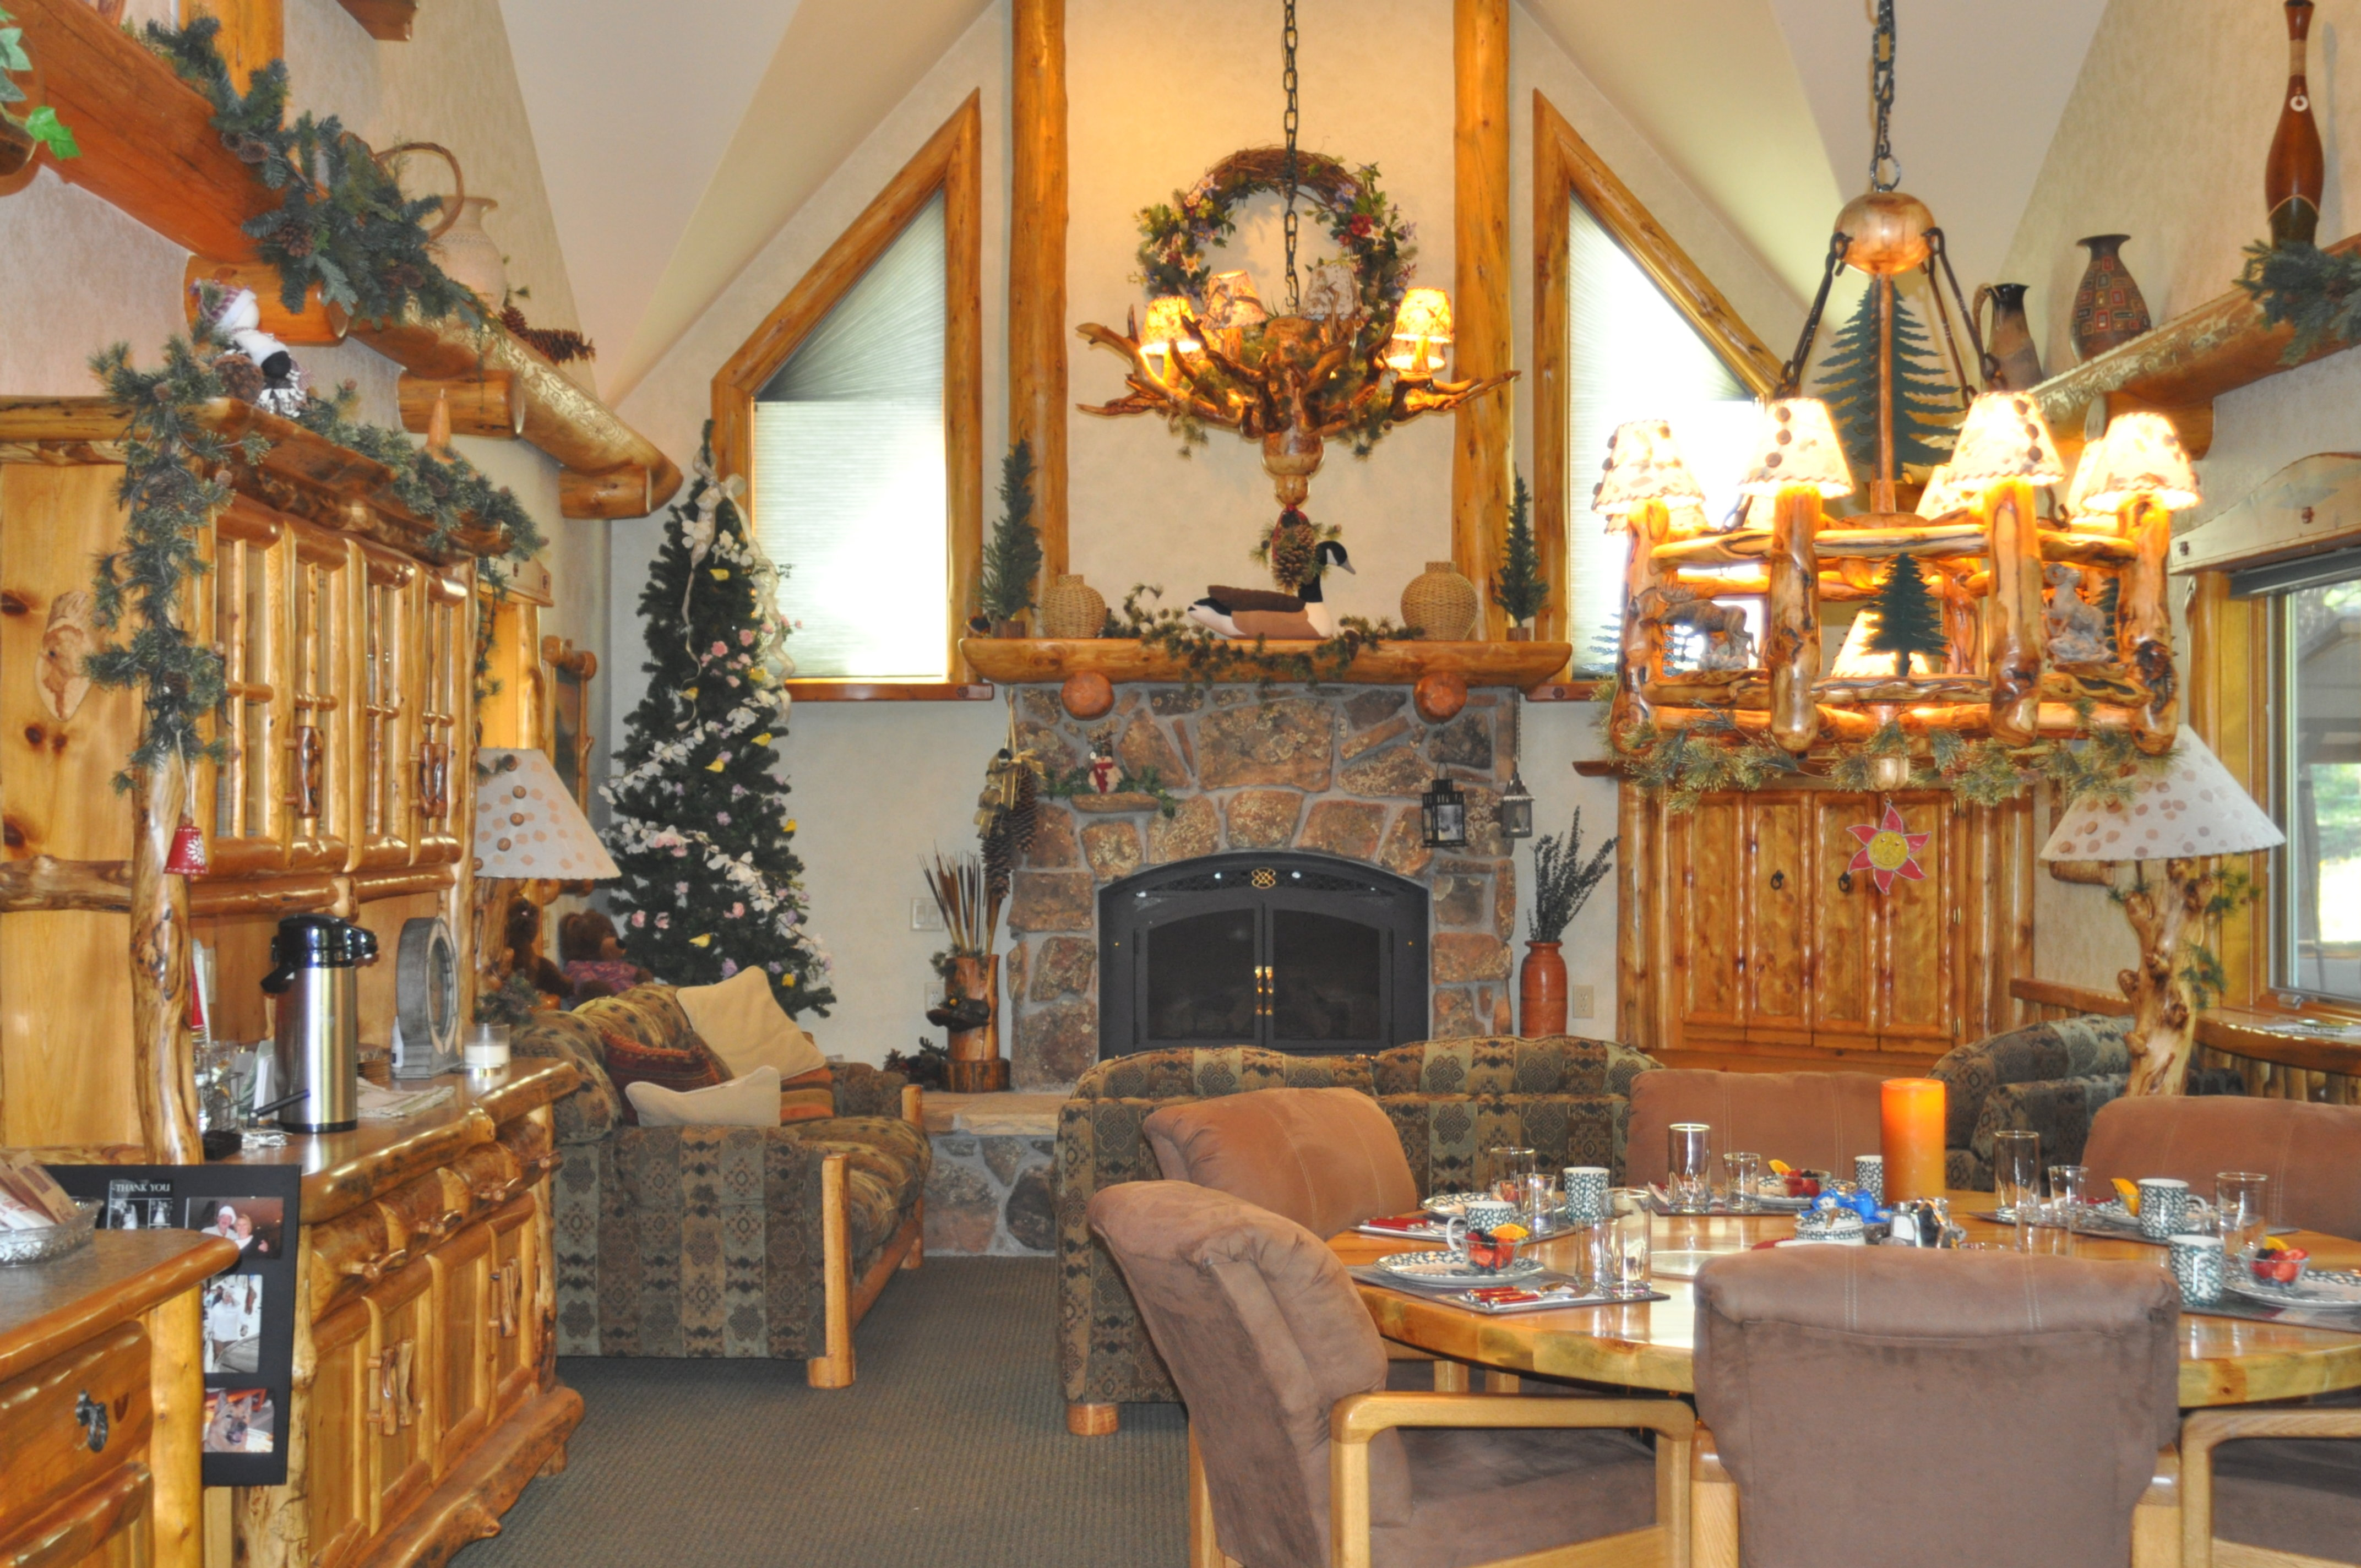 Estes Park Bed and Breakfast